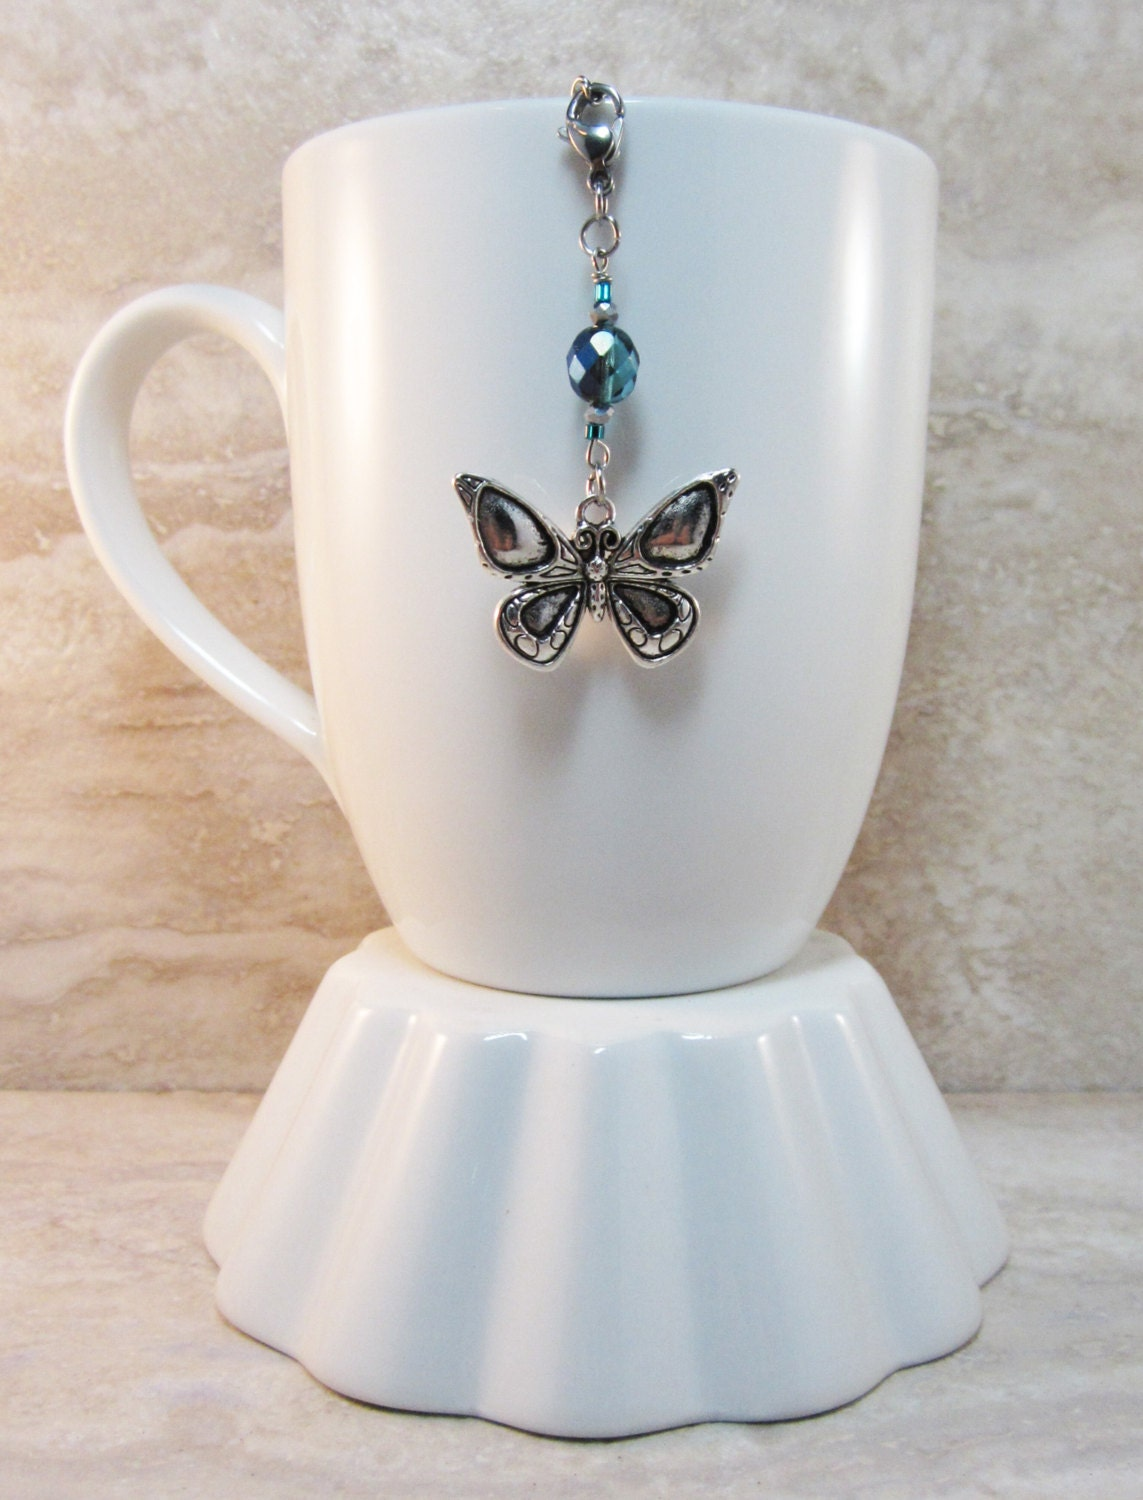 Adorable Butterfly Tea Infuser Charm-Antique Silver Finish Butterfly-Czech  Teal AB Bead-Silver Glass Bead-Tea Party-Love Bugs Collection